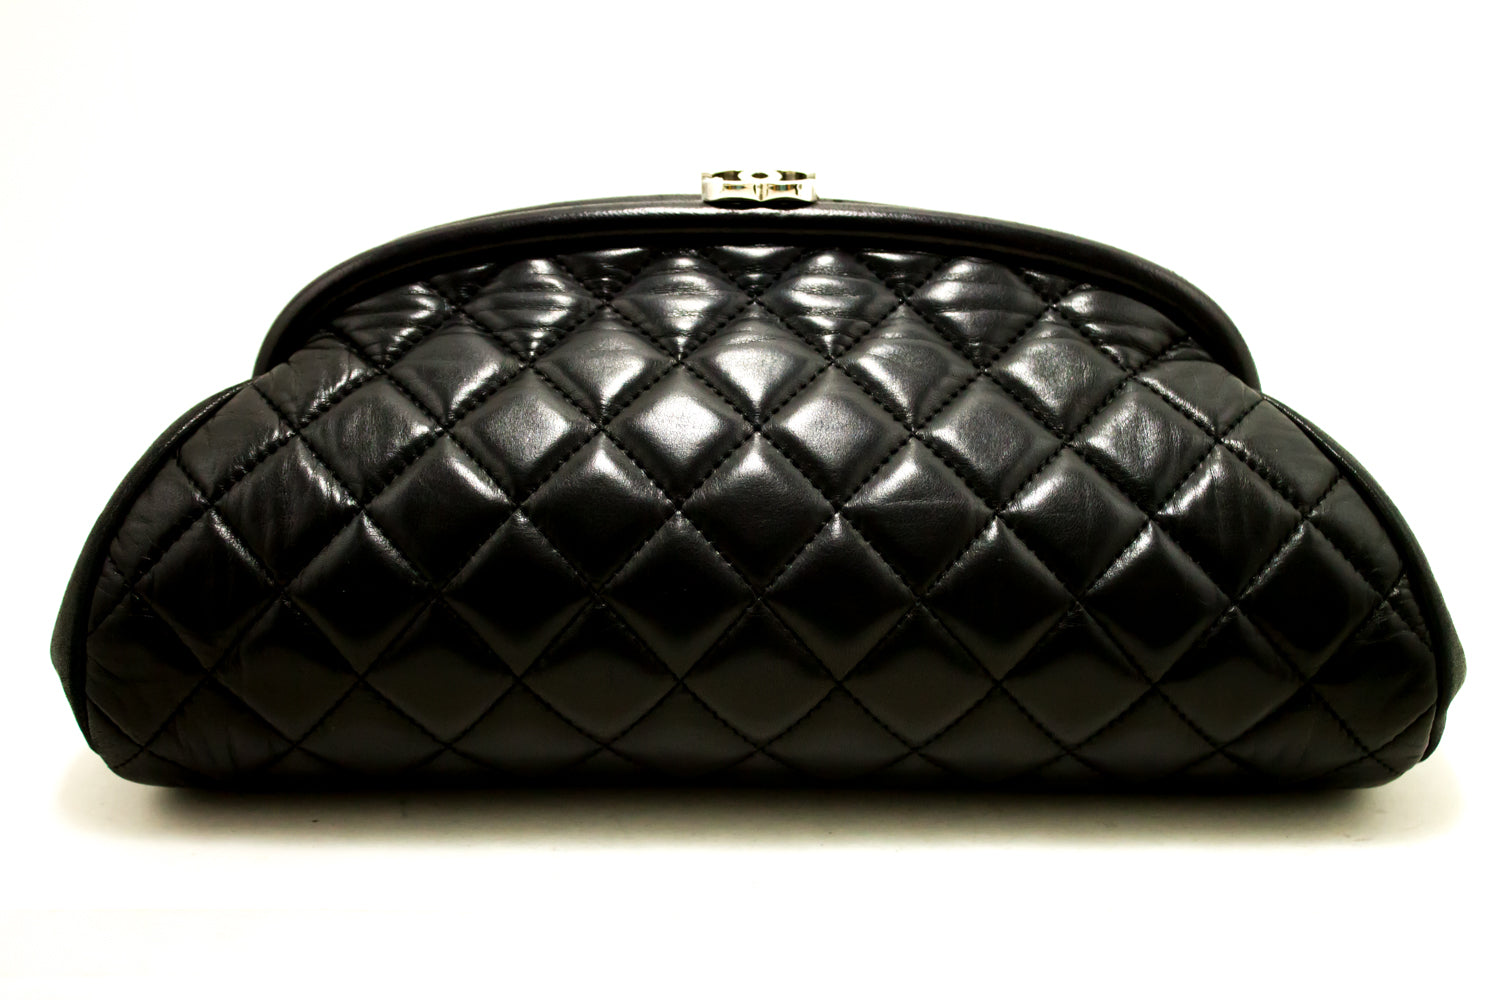 5a669ef821ff ... CHANEL Lambskin Timeless Clutch Bag Black Quilted Leather Silver n48- Chanel-hannari-shop ...